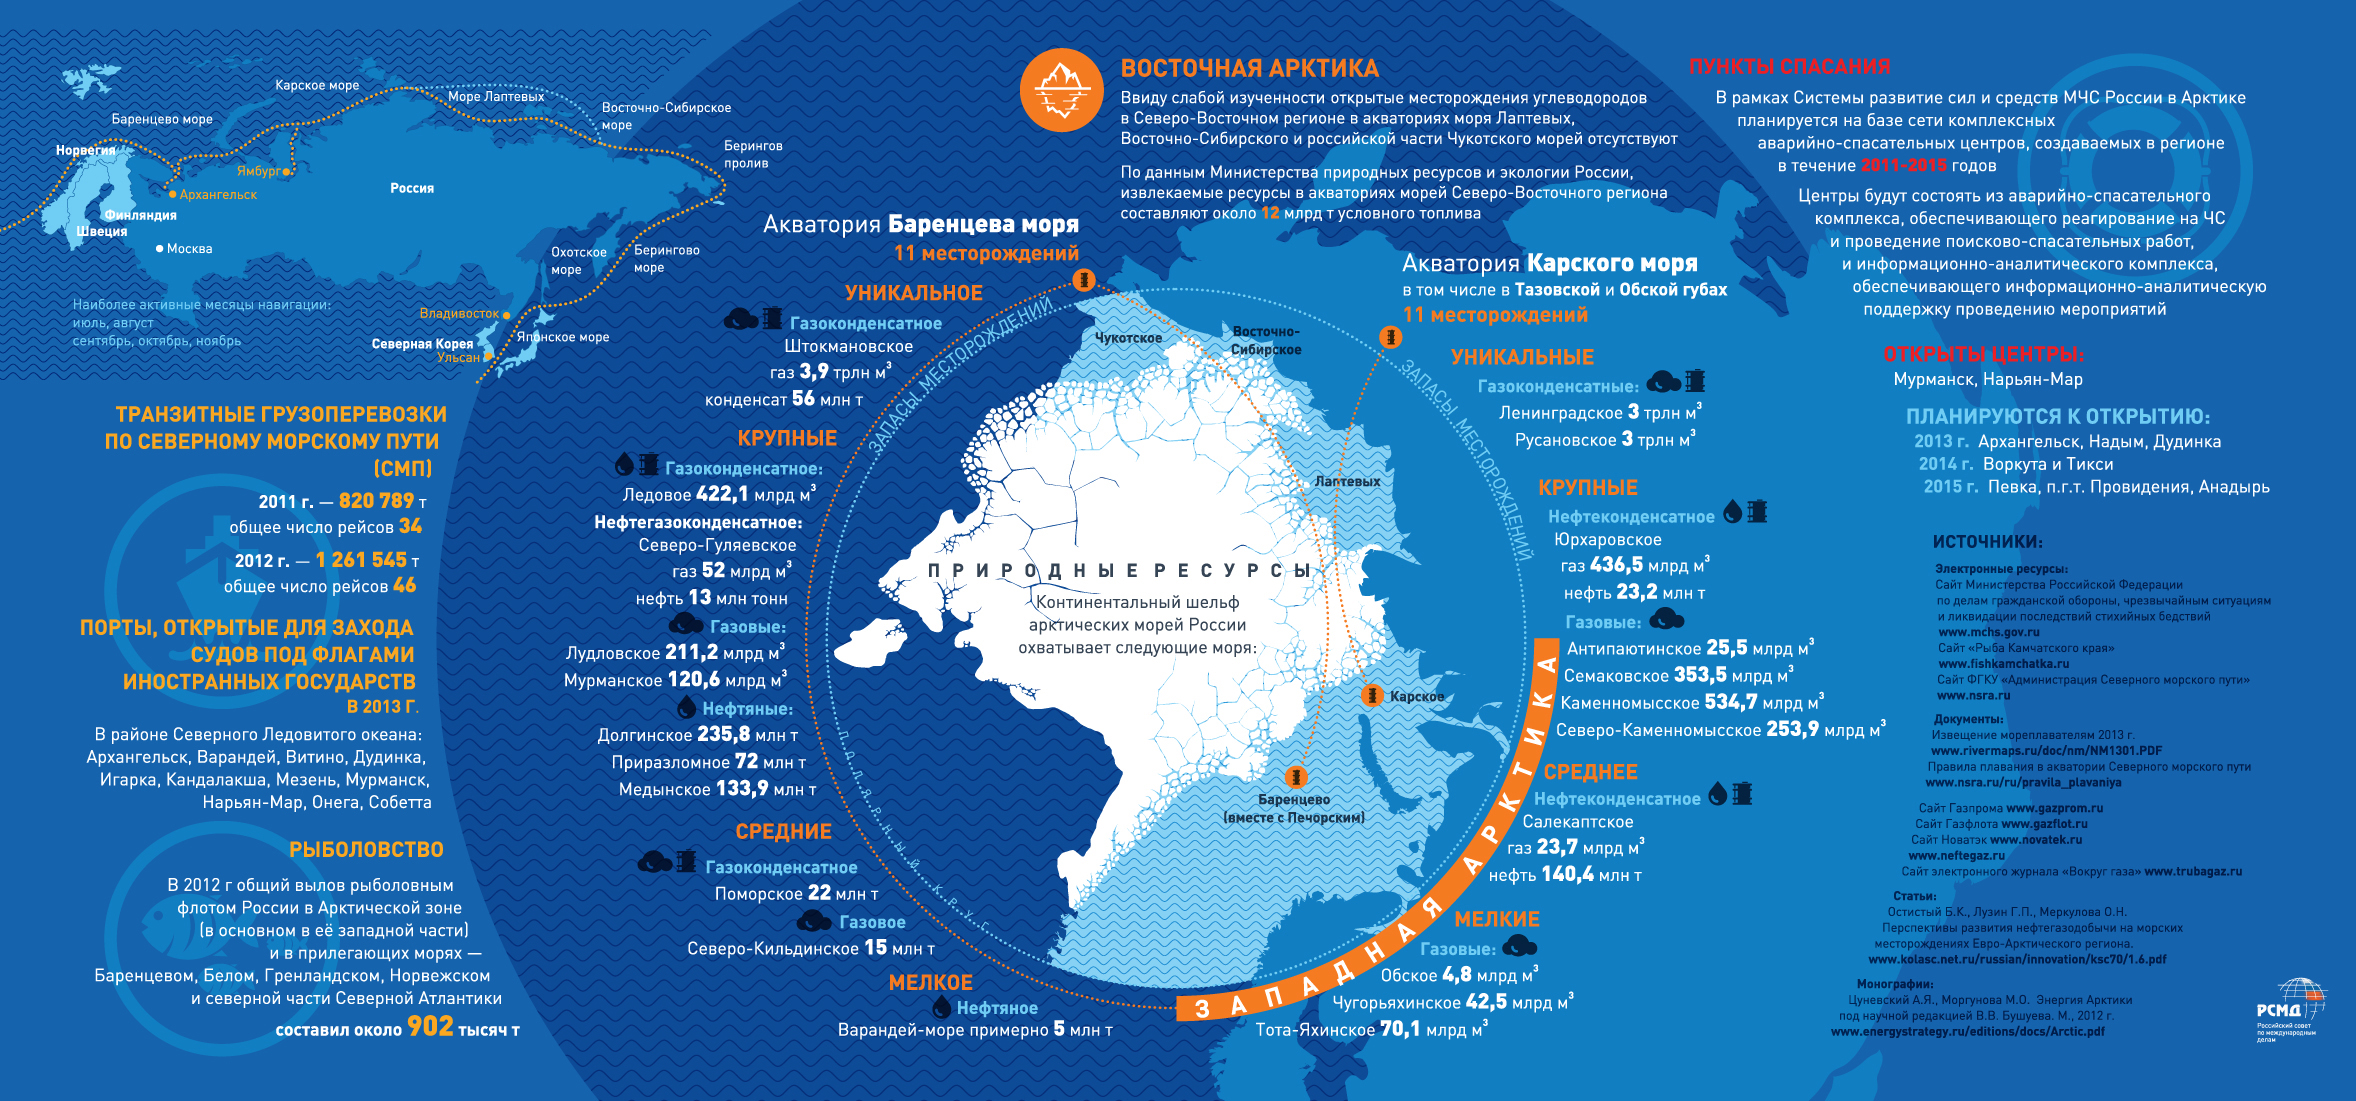 http://russiancouncil.ru/common/upload/Arctic_Resources.jpg